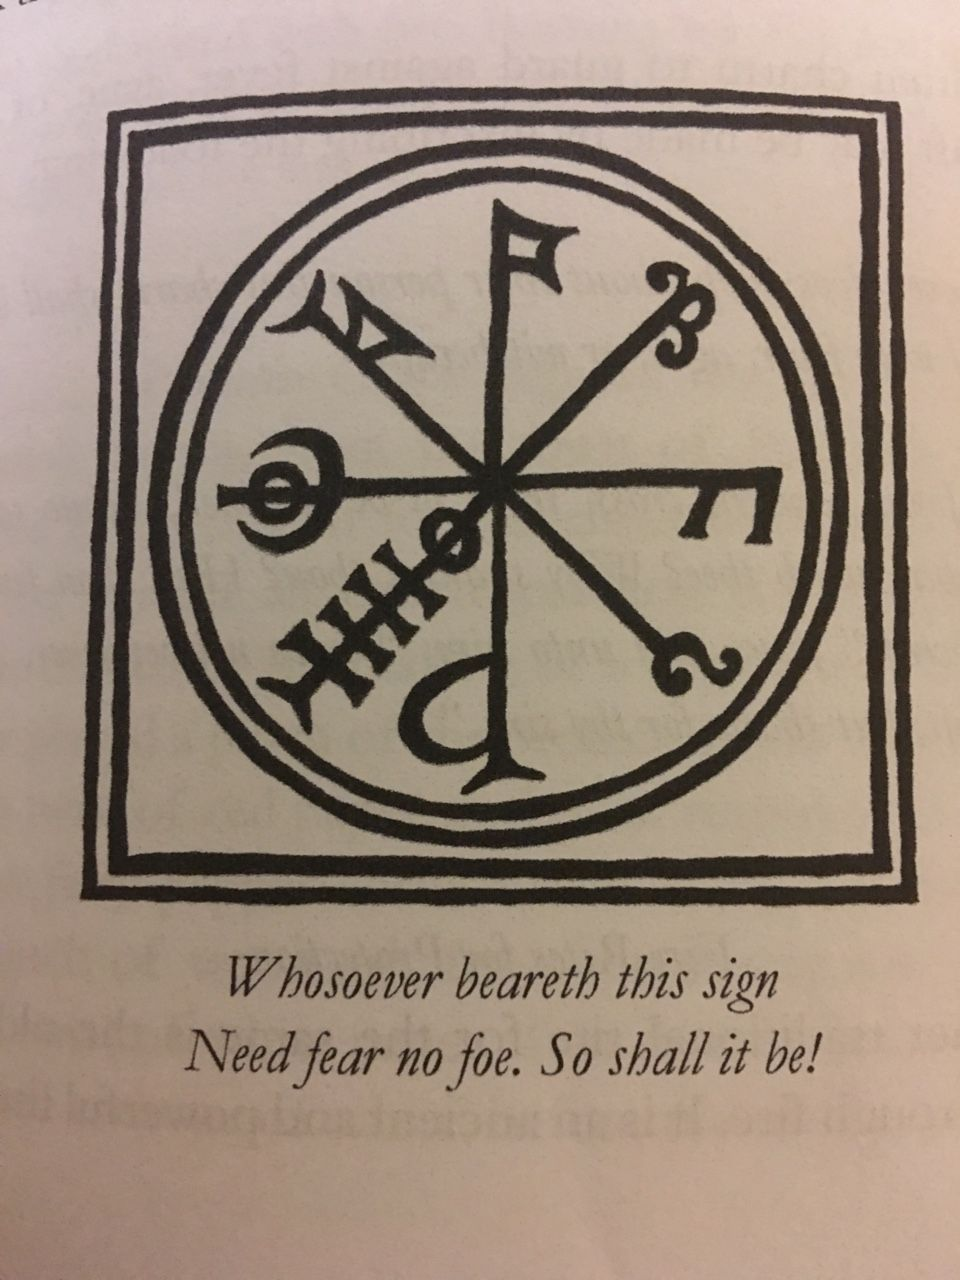 Witchs haven talismans symbols pinterest symbols wicca find this pin and more on talismans symbols by letseytarot buycottarizona Choice Image